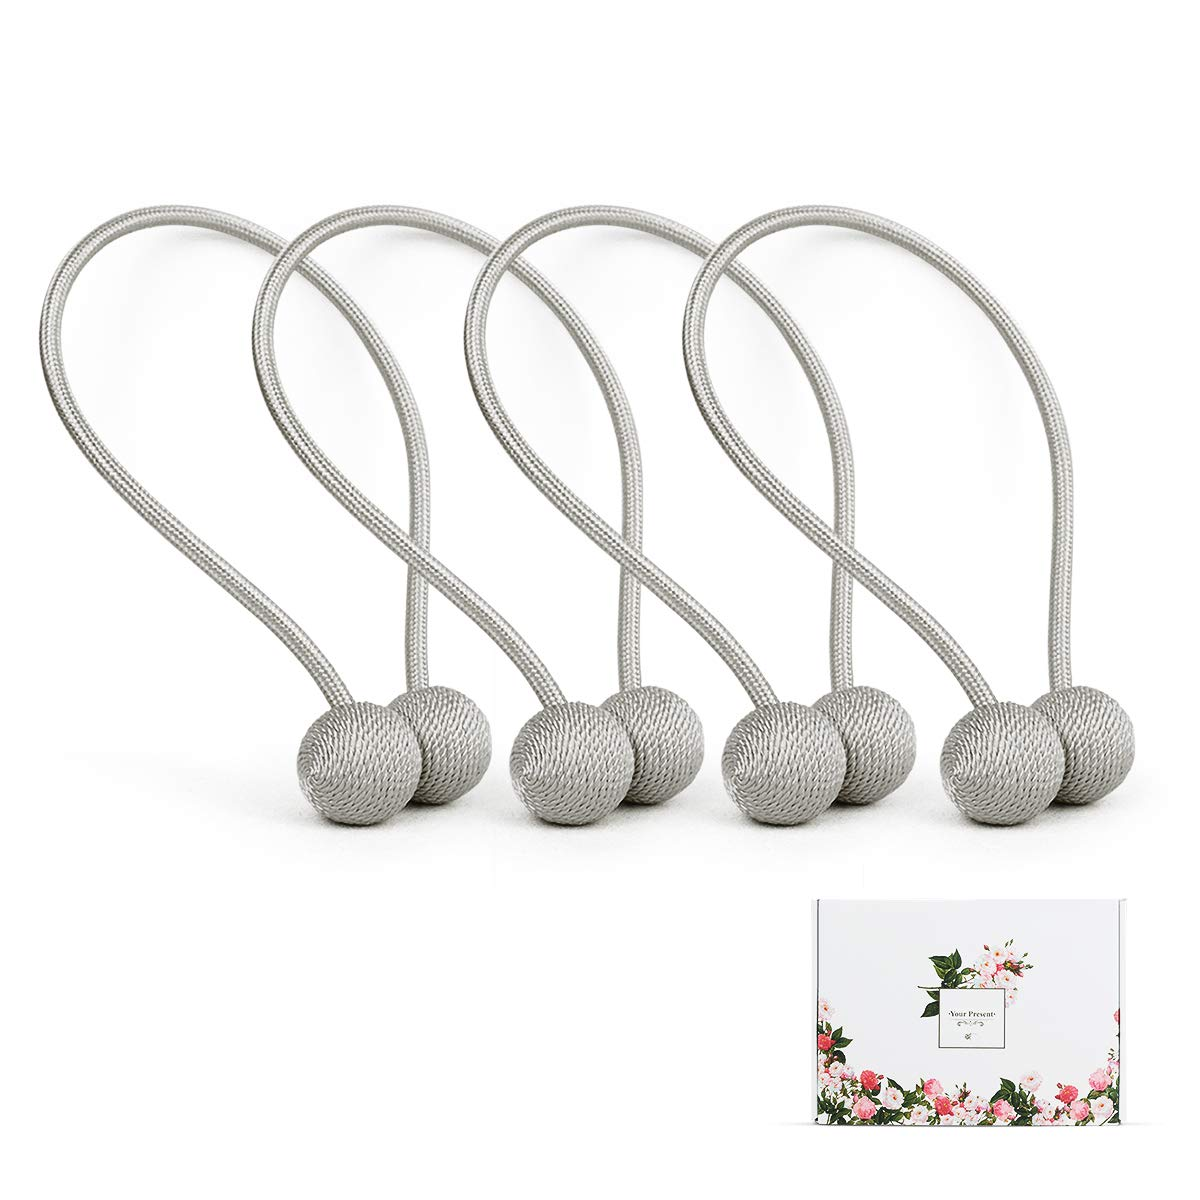 Magnetic Curtain Tiebacks,The Most Easy Strong Magnet Curtain Holdbacks,Simple Modern Decorative Curtain Tie Backs/holder for Home&Outdoor Blackout Curtains,Draperies and Sheer Panels,Grey/4 Pieces